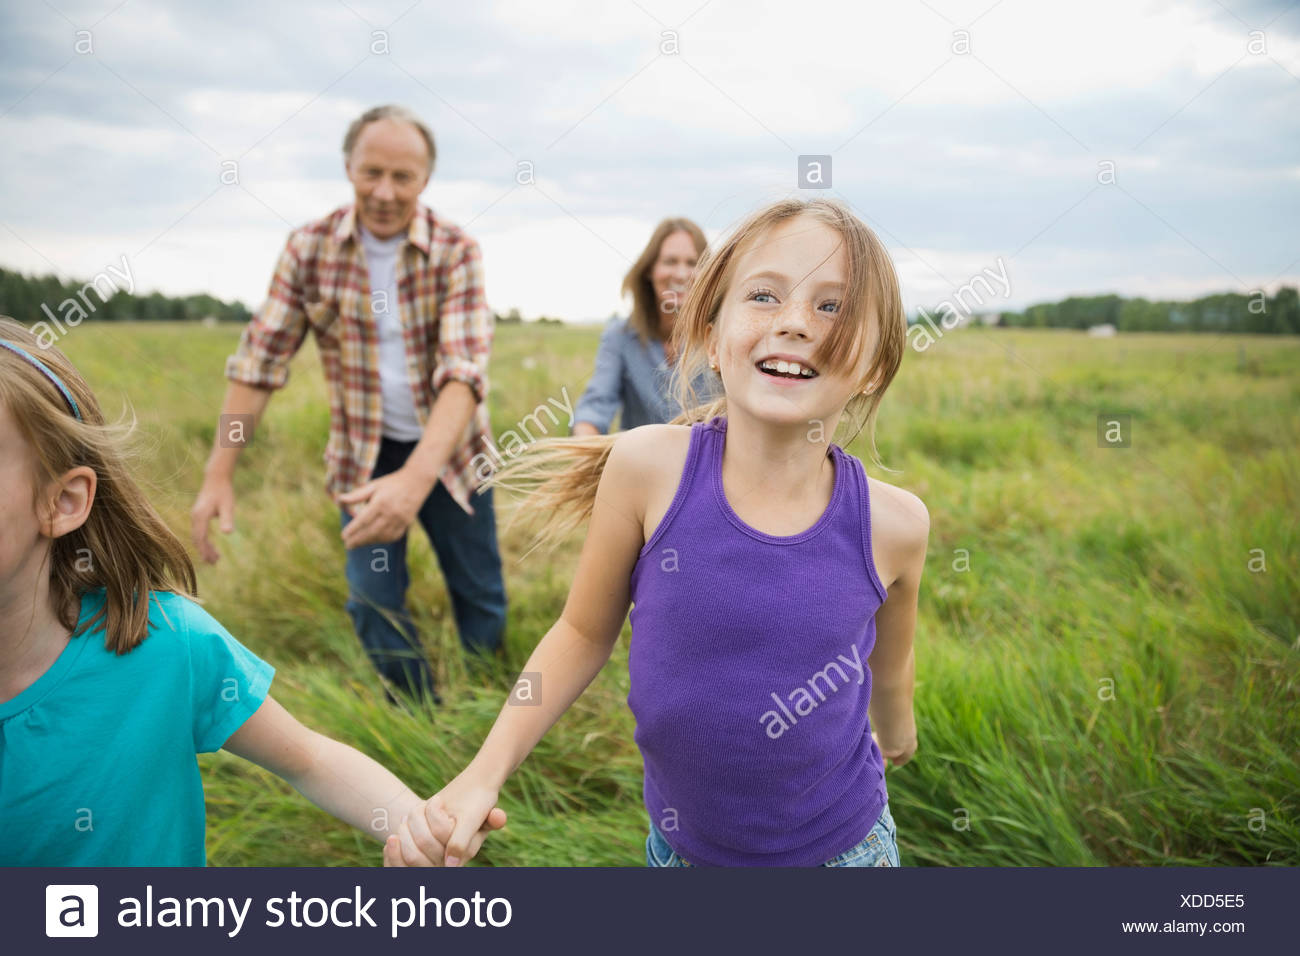 Grandparents chasing granddaughters in field - Stock Image